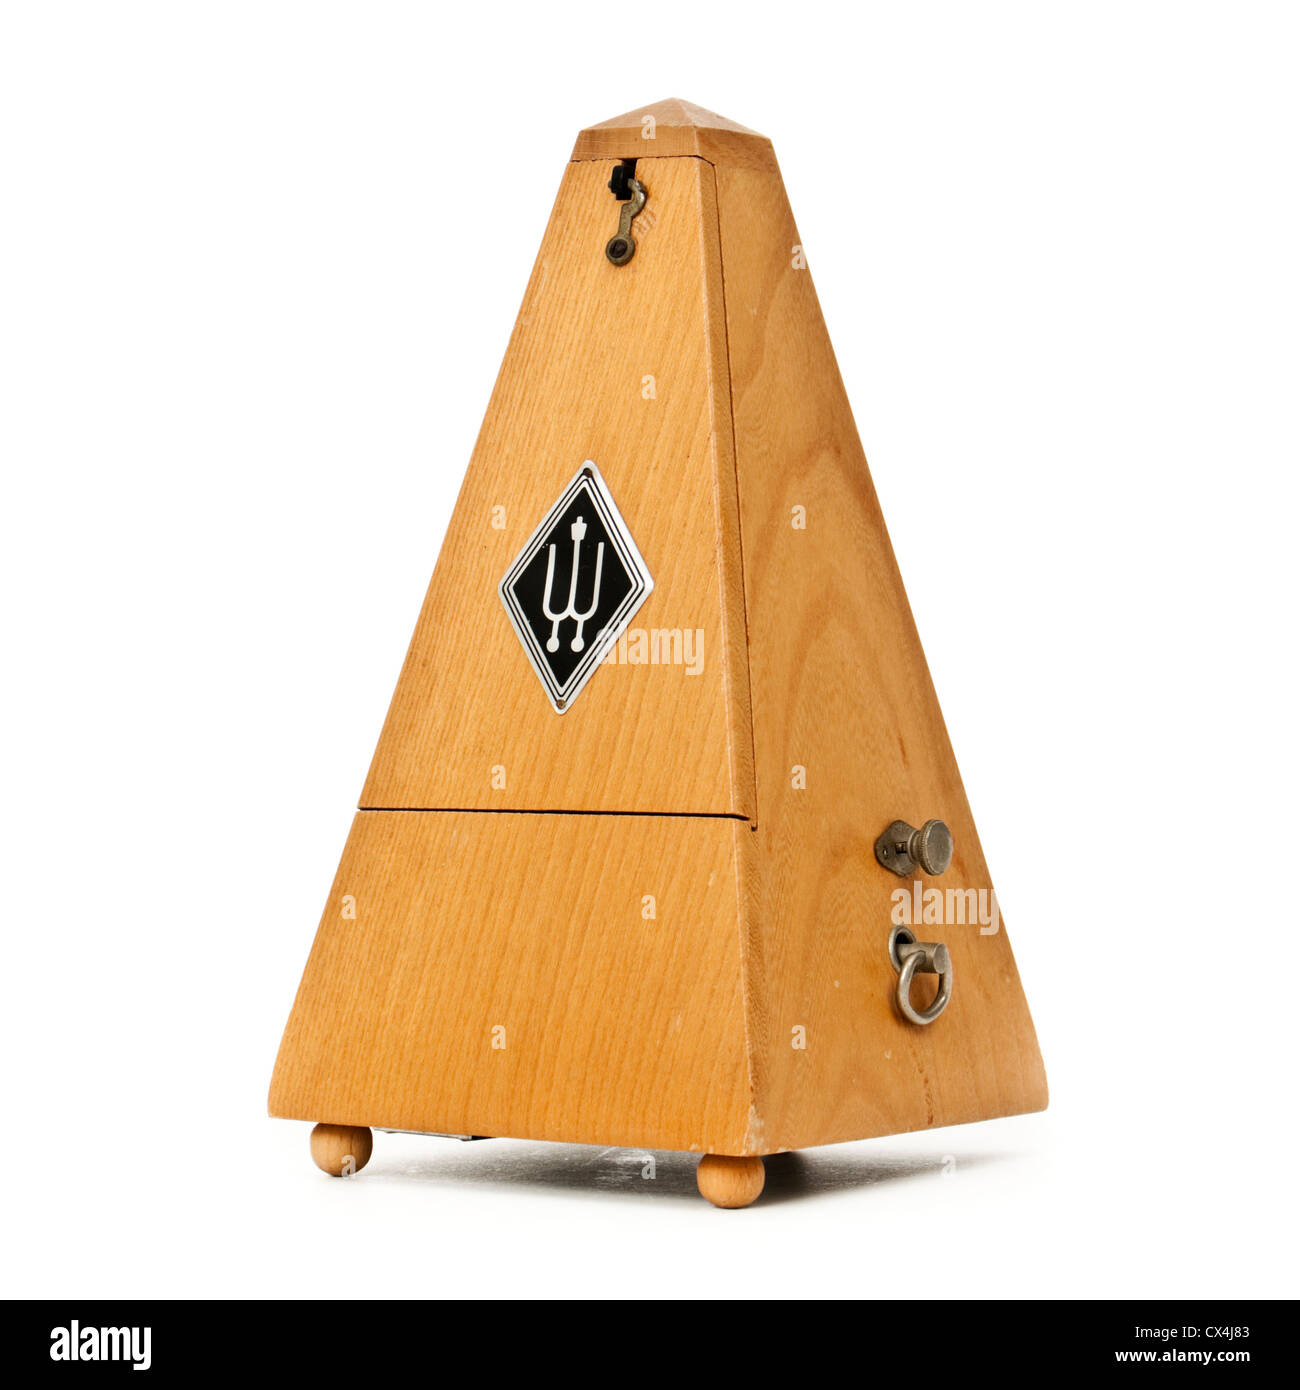 Vintage mechanical wooden pyramid metronome by Wittner of Germany - Stock Image